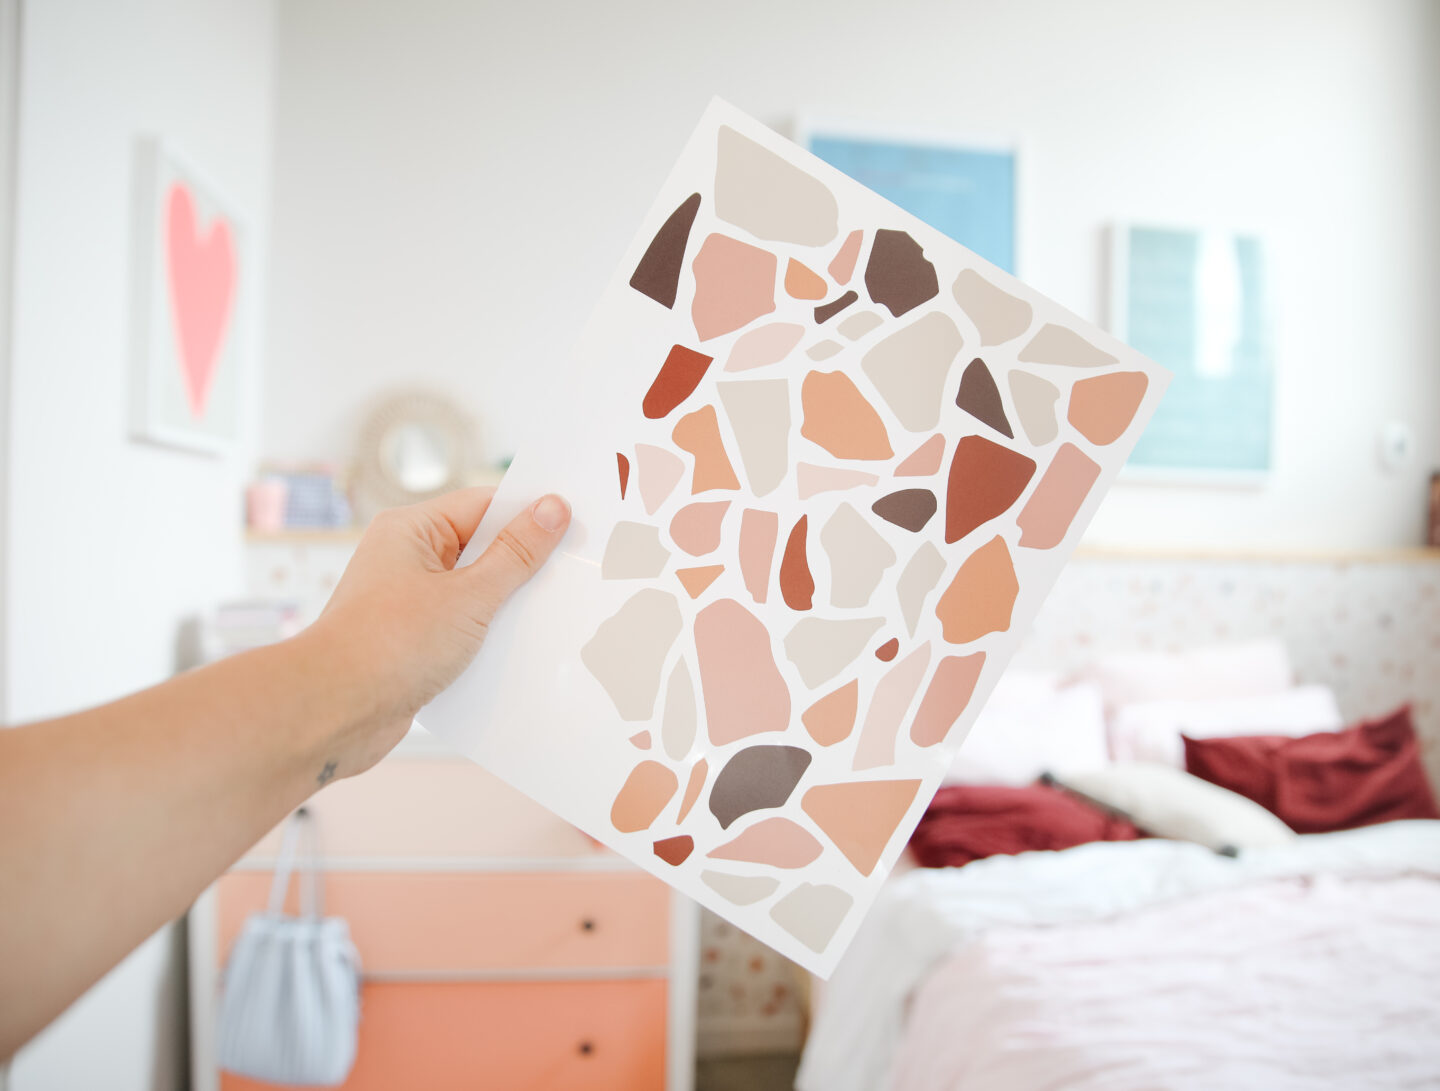 Terrazzo Wall Decals: How to Install them